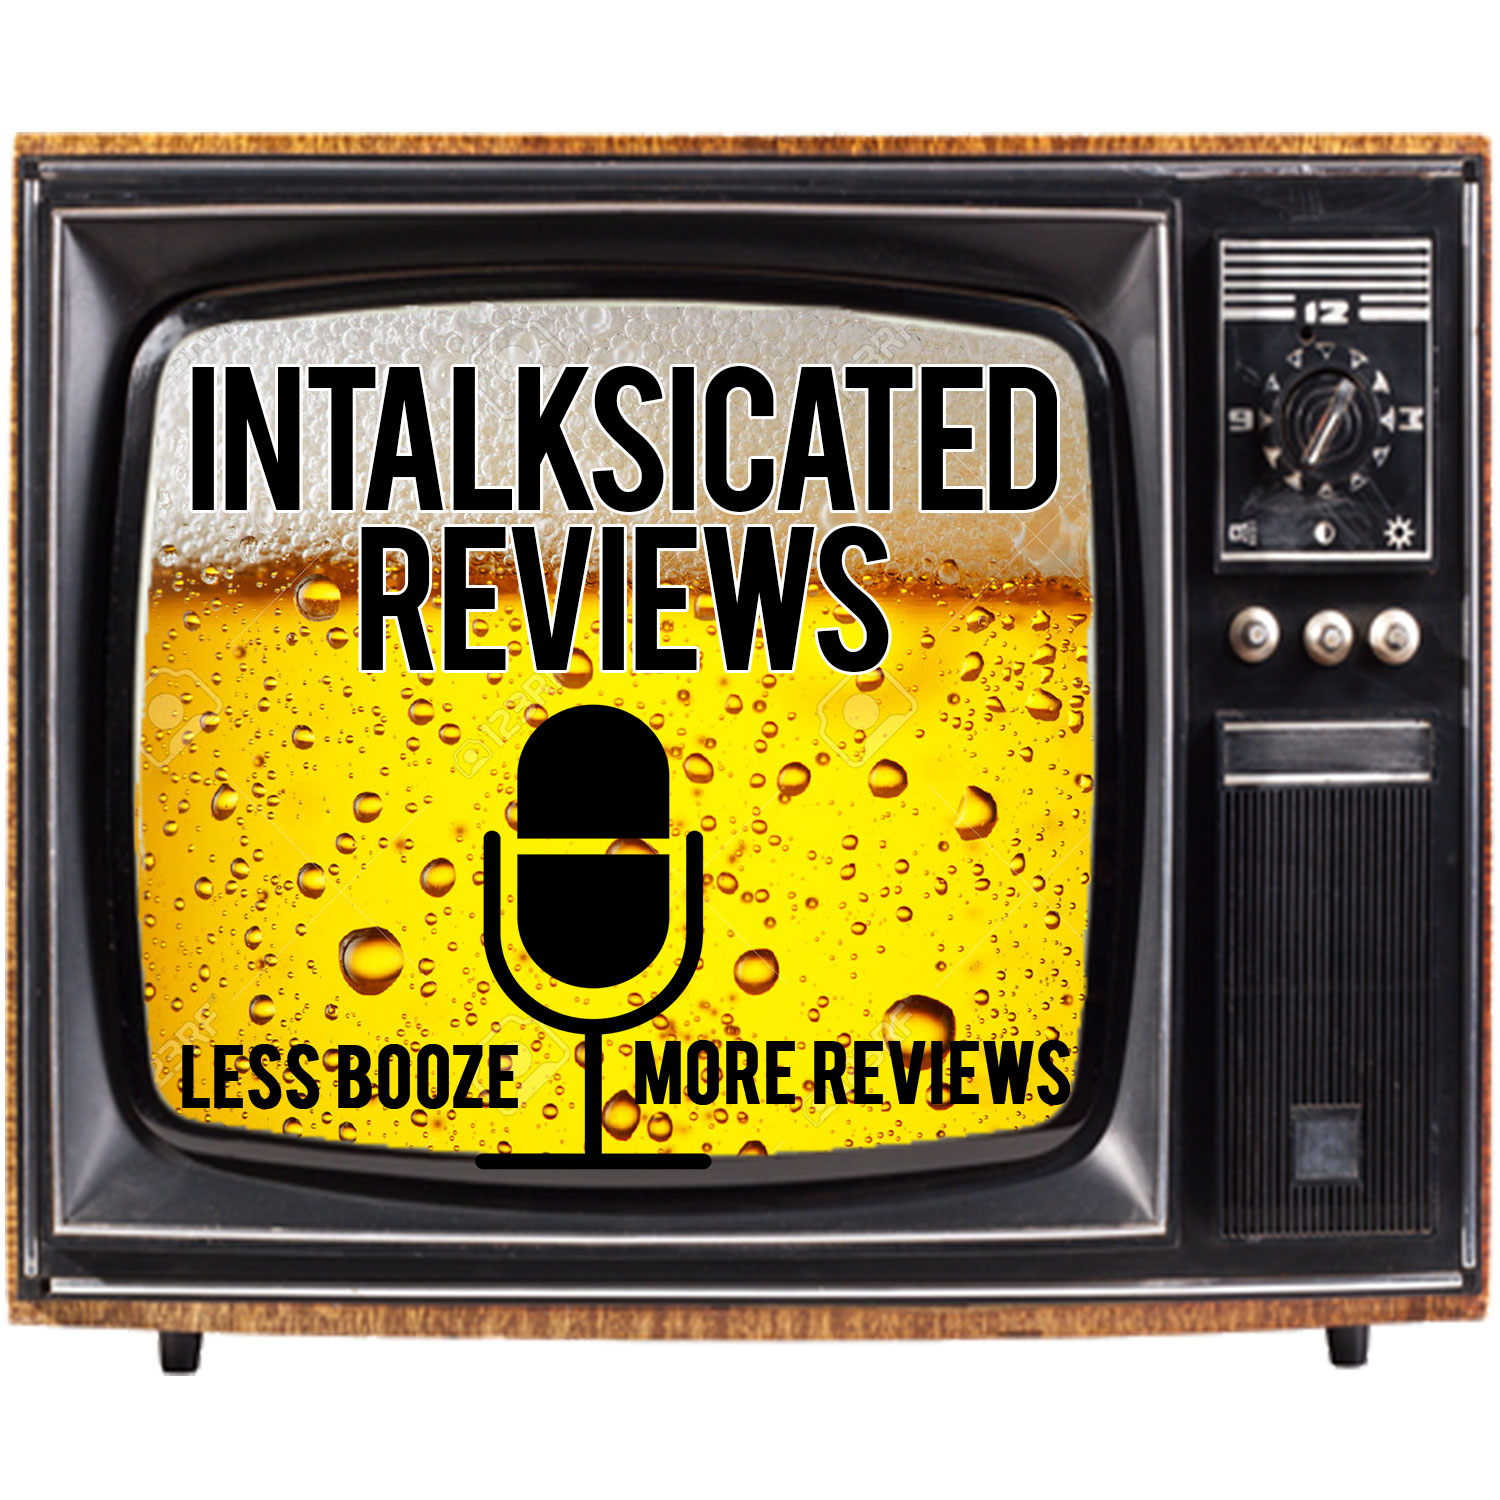 InTalksicated Reviews show art